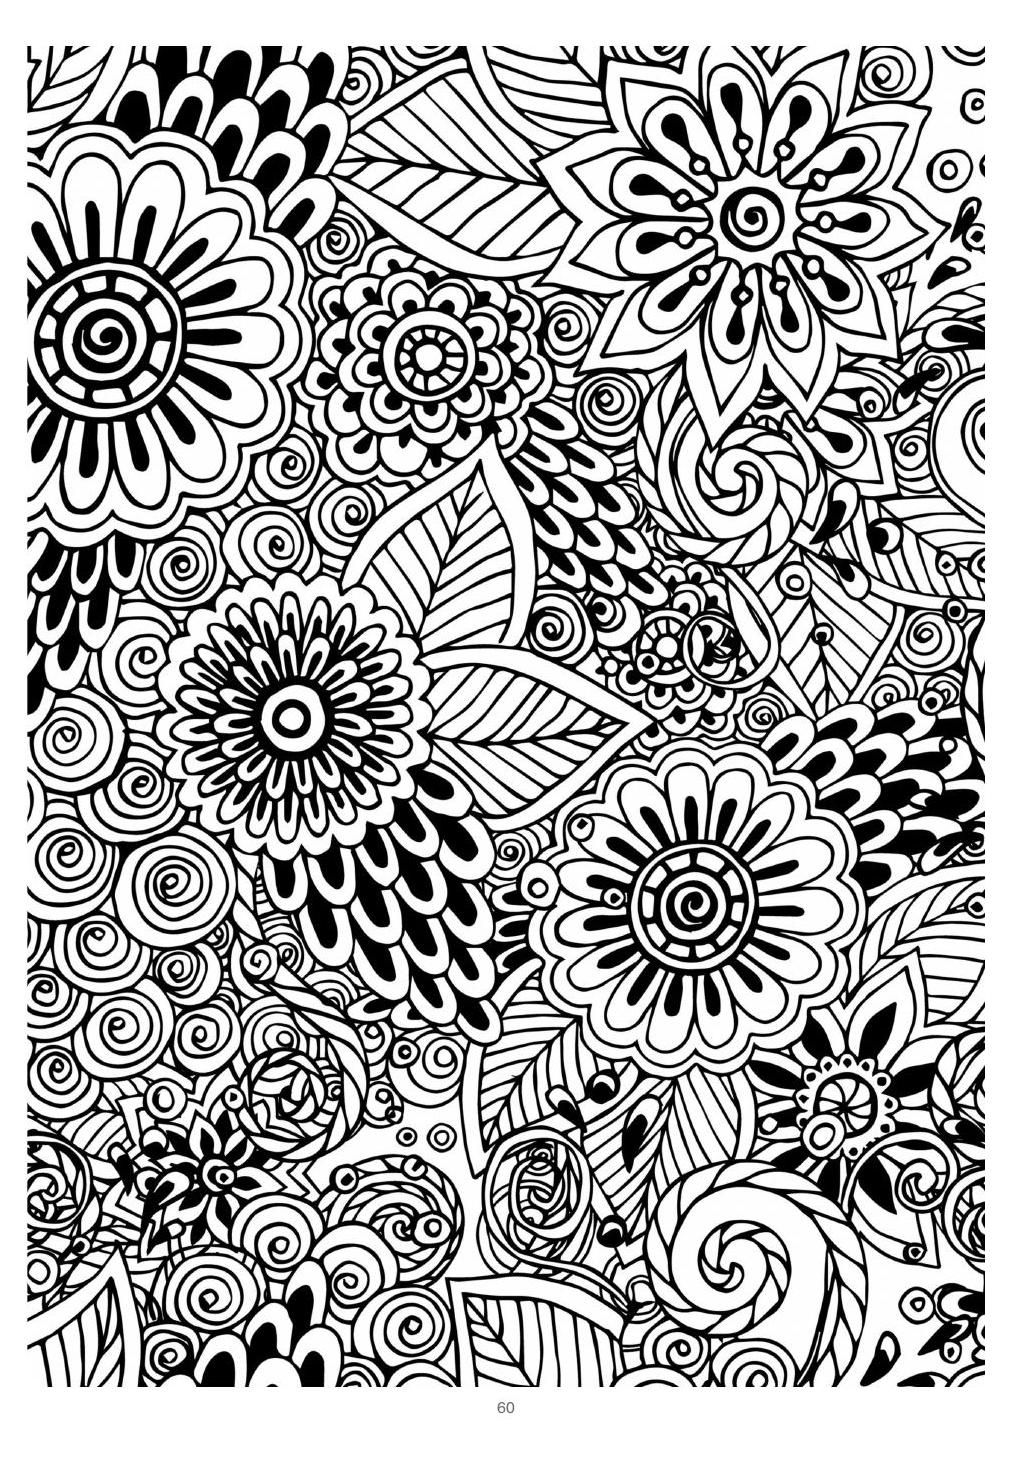 Mind Massage Colouring Book For Adults Coloring Books Abstract Canvas Painting Coloring Pages